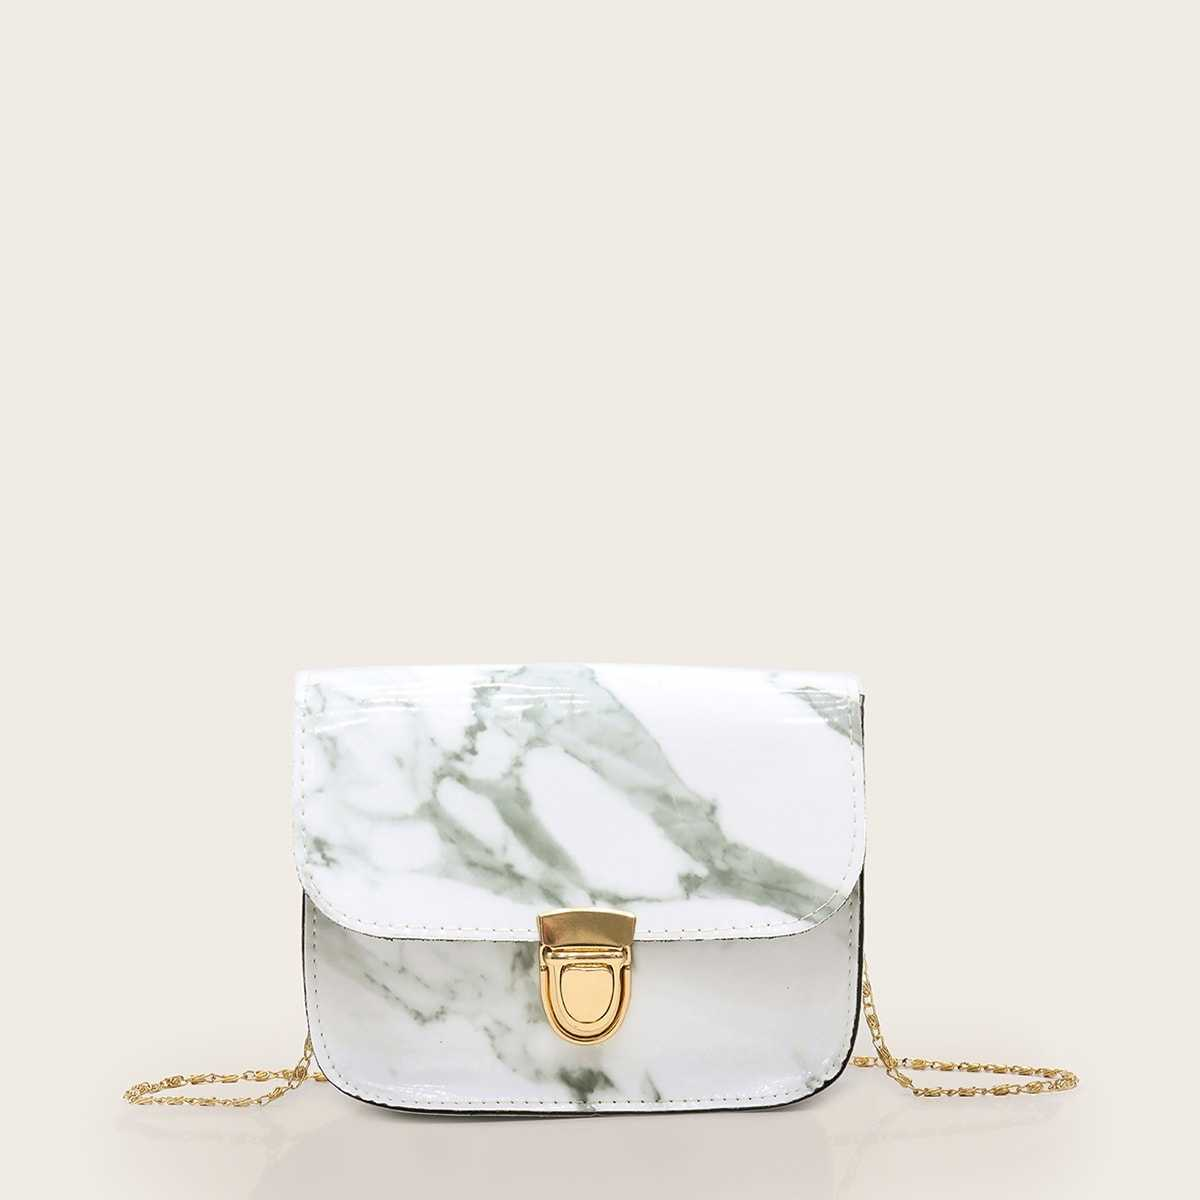 Push Lock Marble Print Chain Bag in Multicolor by ROMWE on GOOFASH